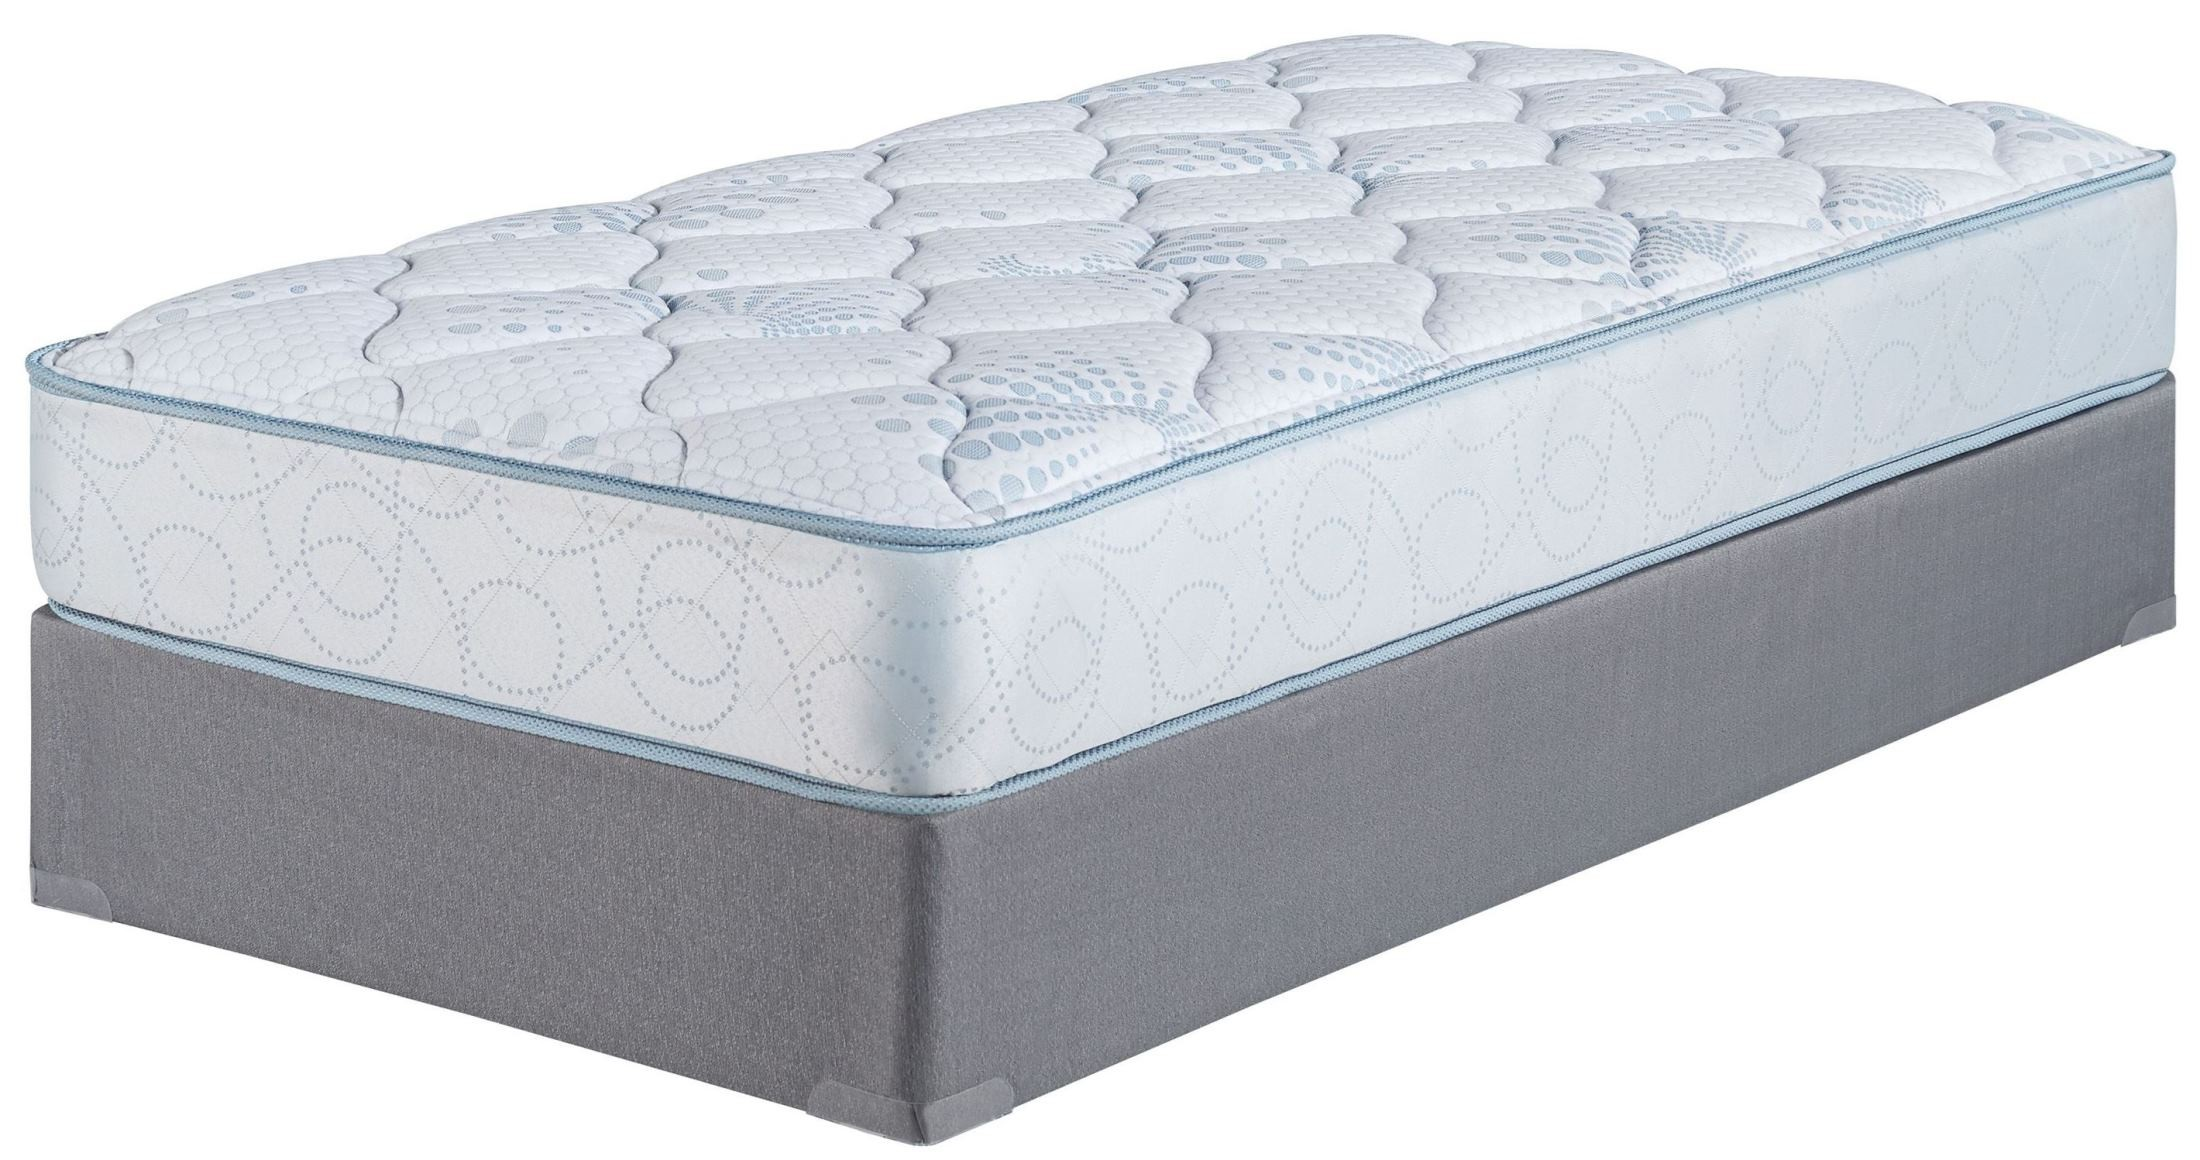 Kids Bedding Innerspring Twin Size Mattress With Foundation M80411 M81x12 Ashley